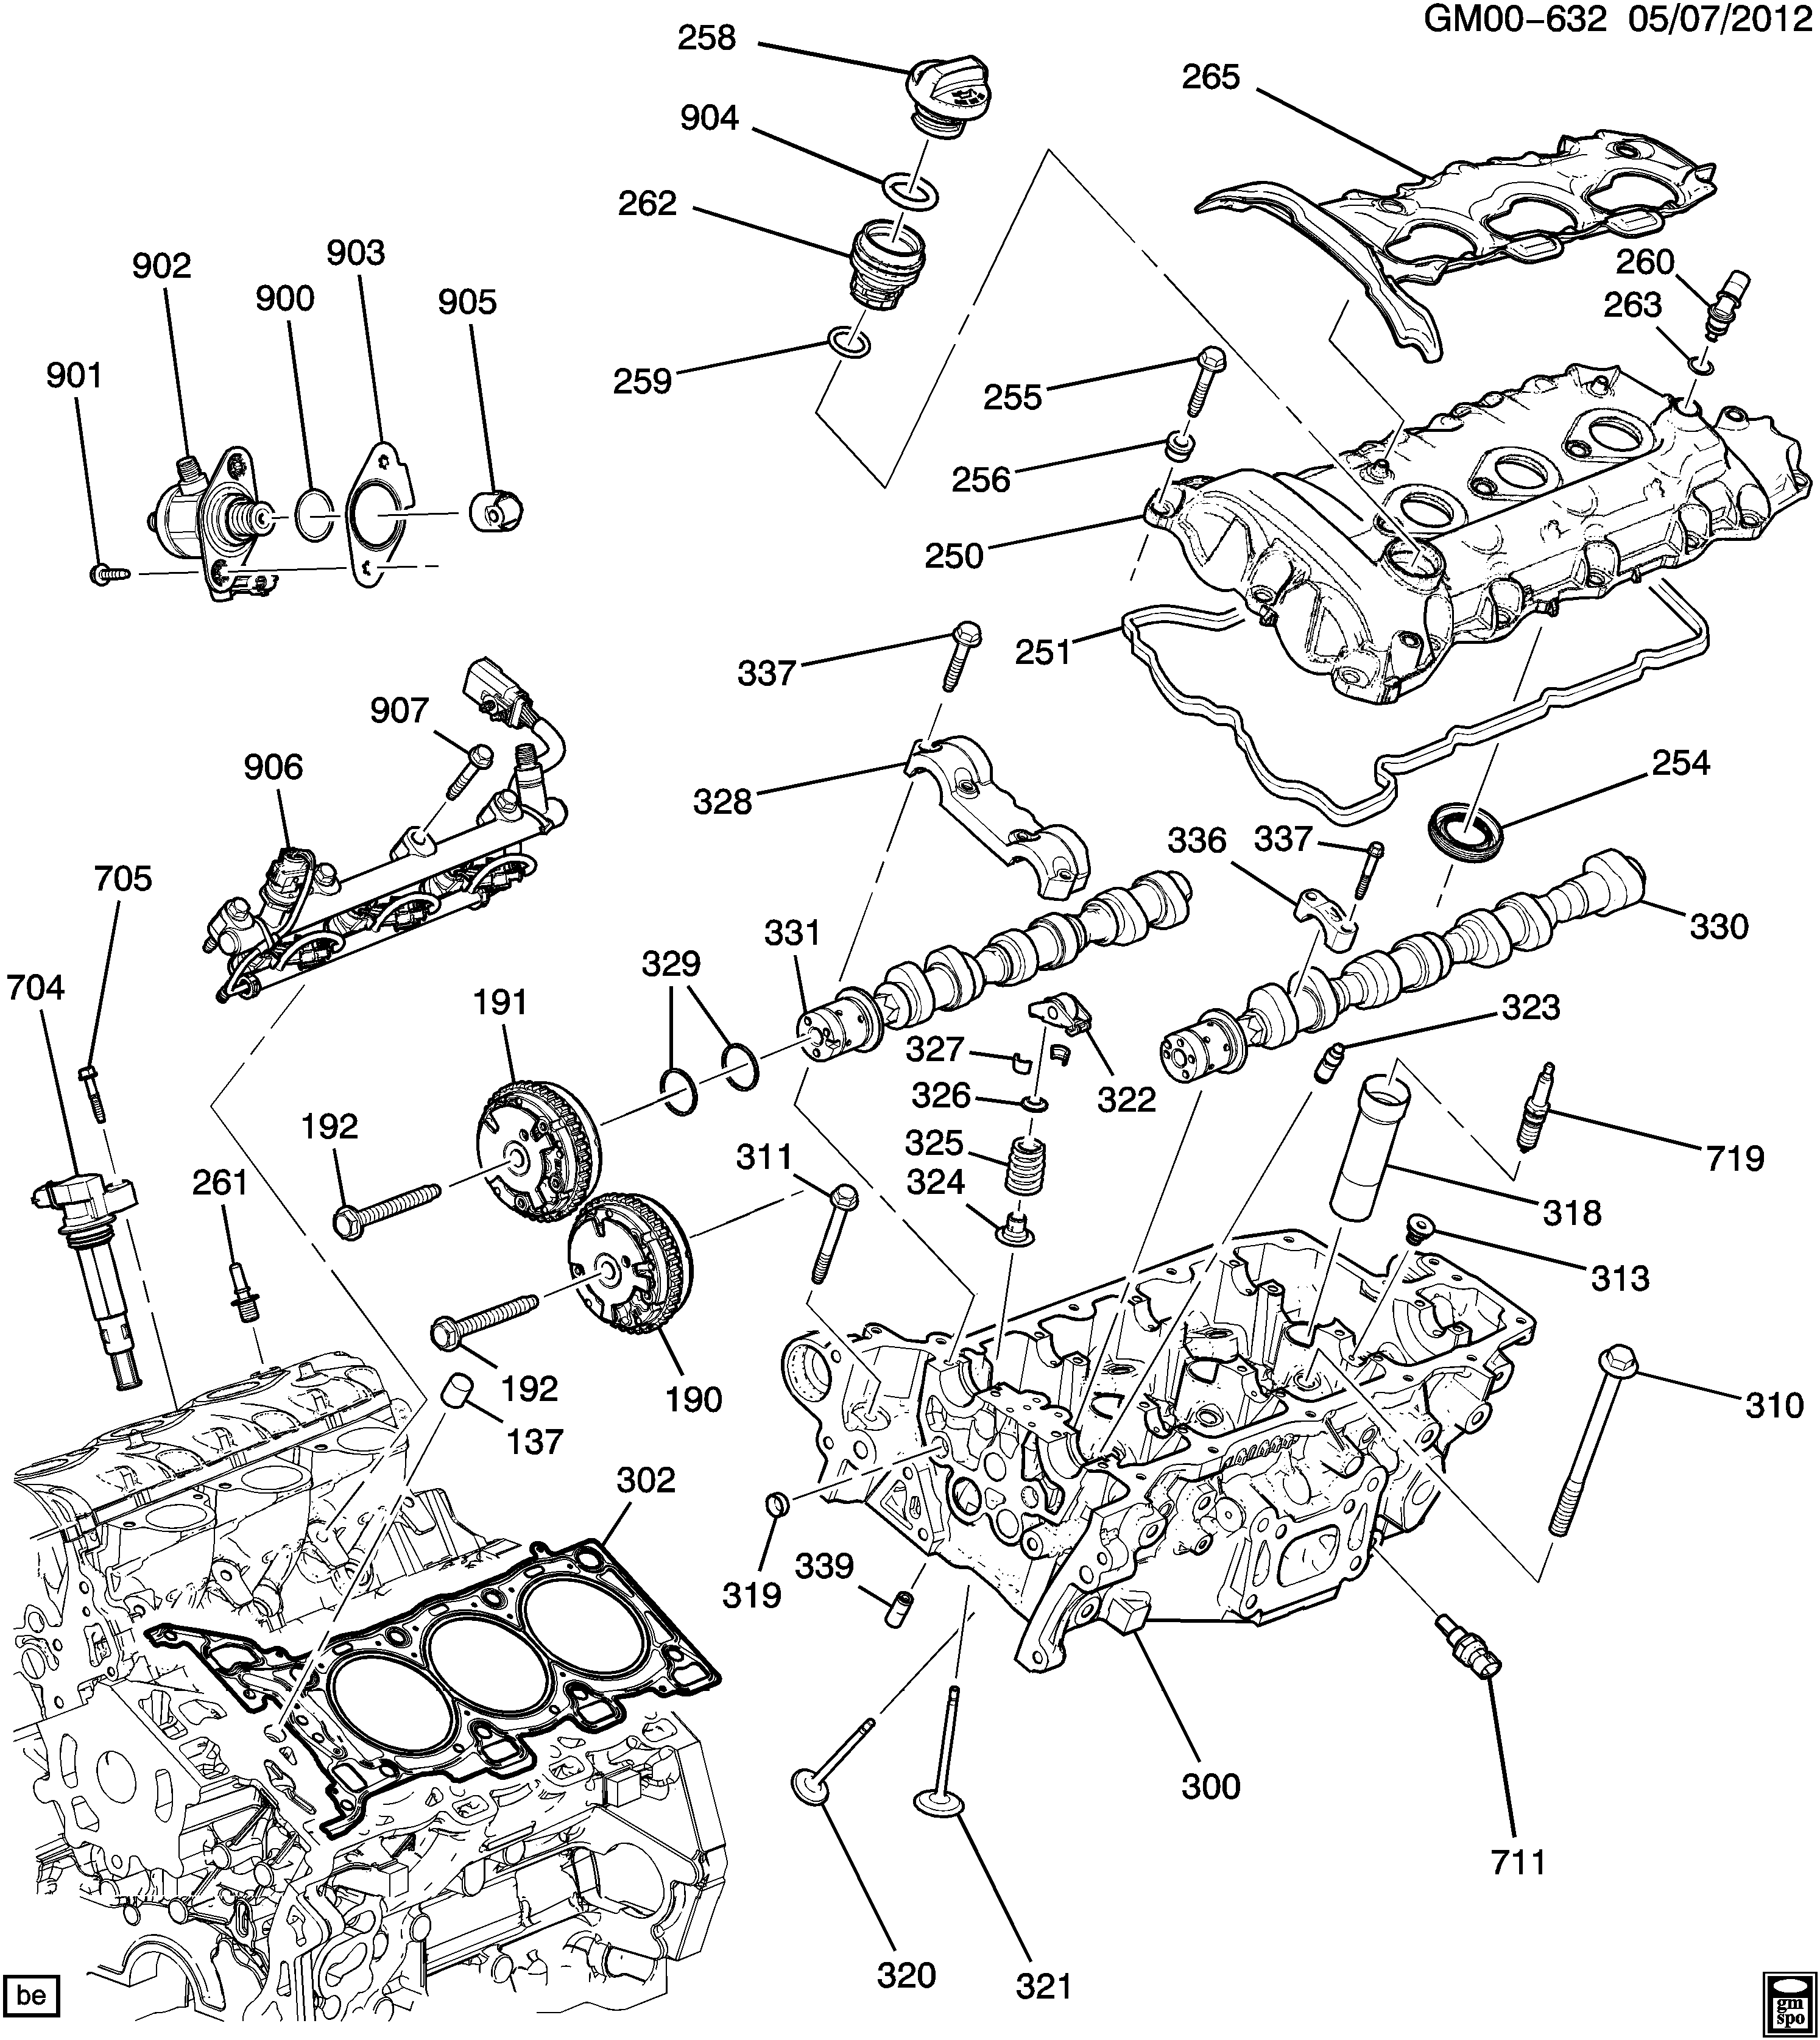 2013 Chevy Impala Engine Diagram